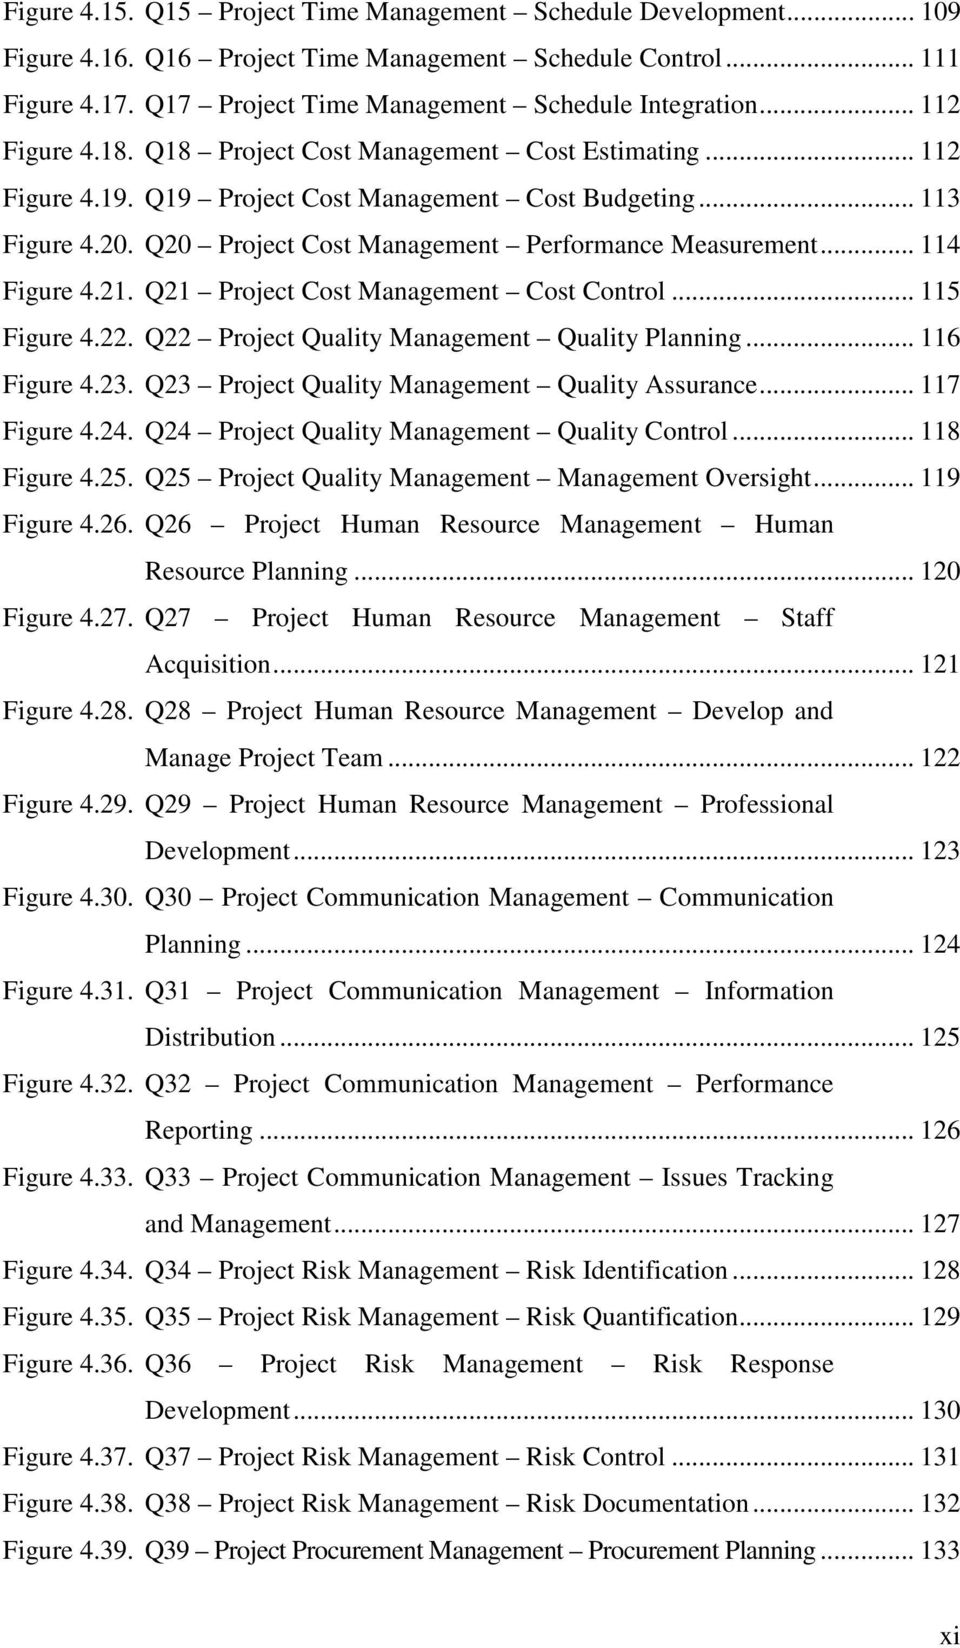 .. 114 Figure 4.21. Q21 Project Cost Management Cost Control... 115 Figure 4.22. Q22 Project Quality Management Quality Planning... 116 Figure 4.23. Q23 Project Quality Management Quality Assurance.